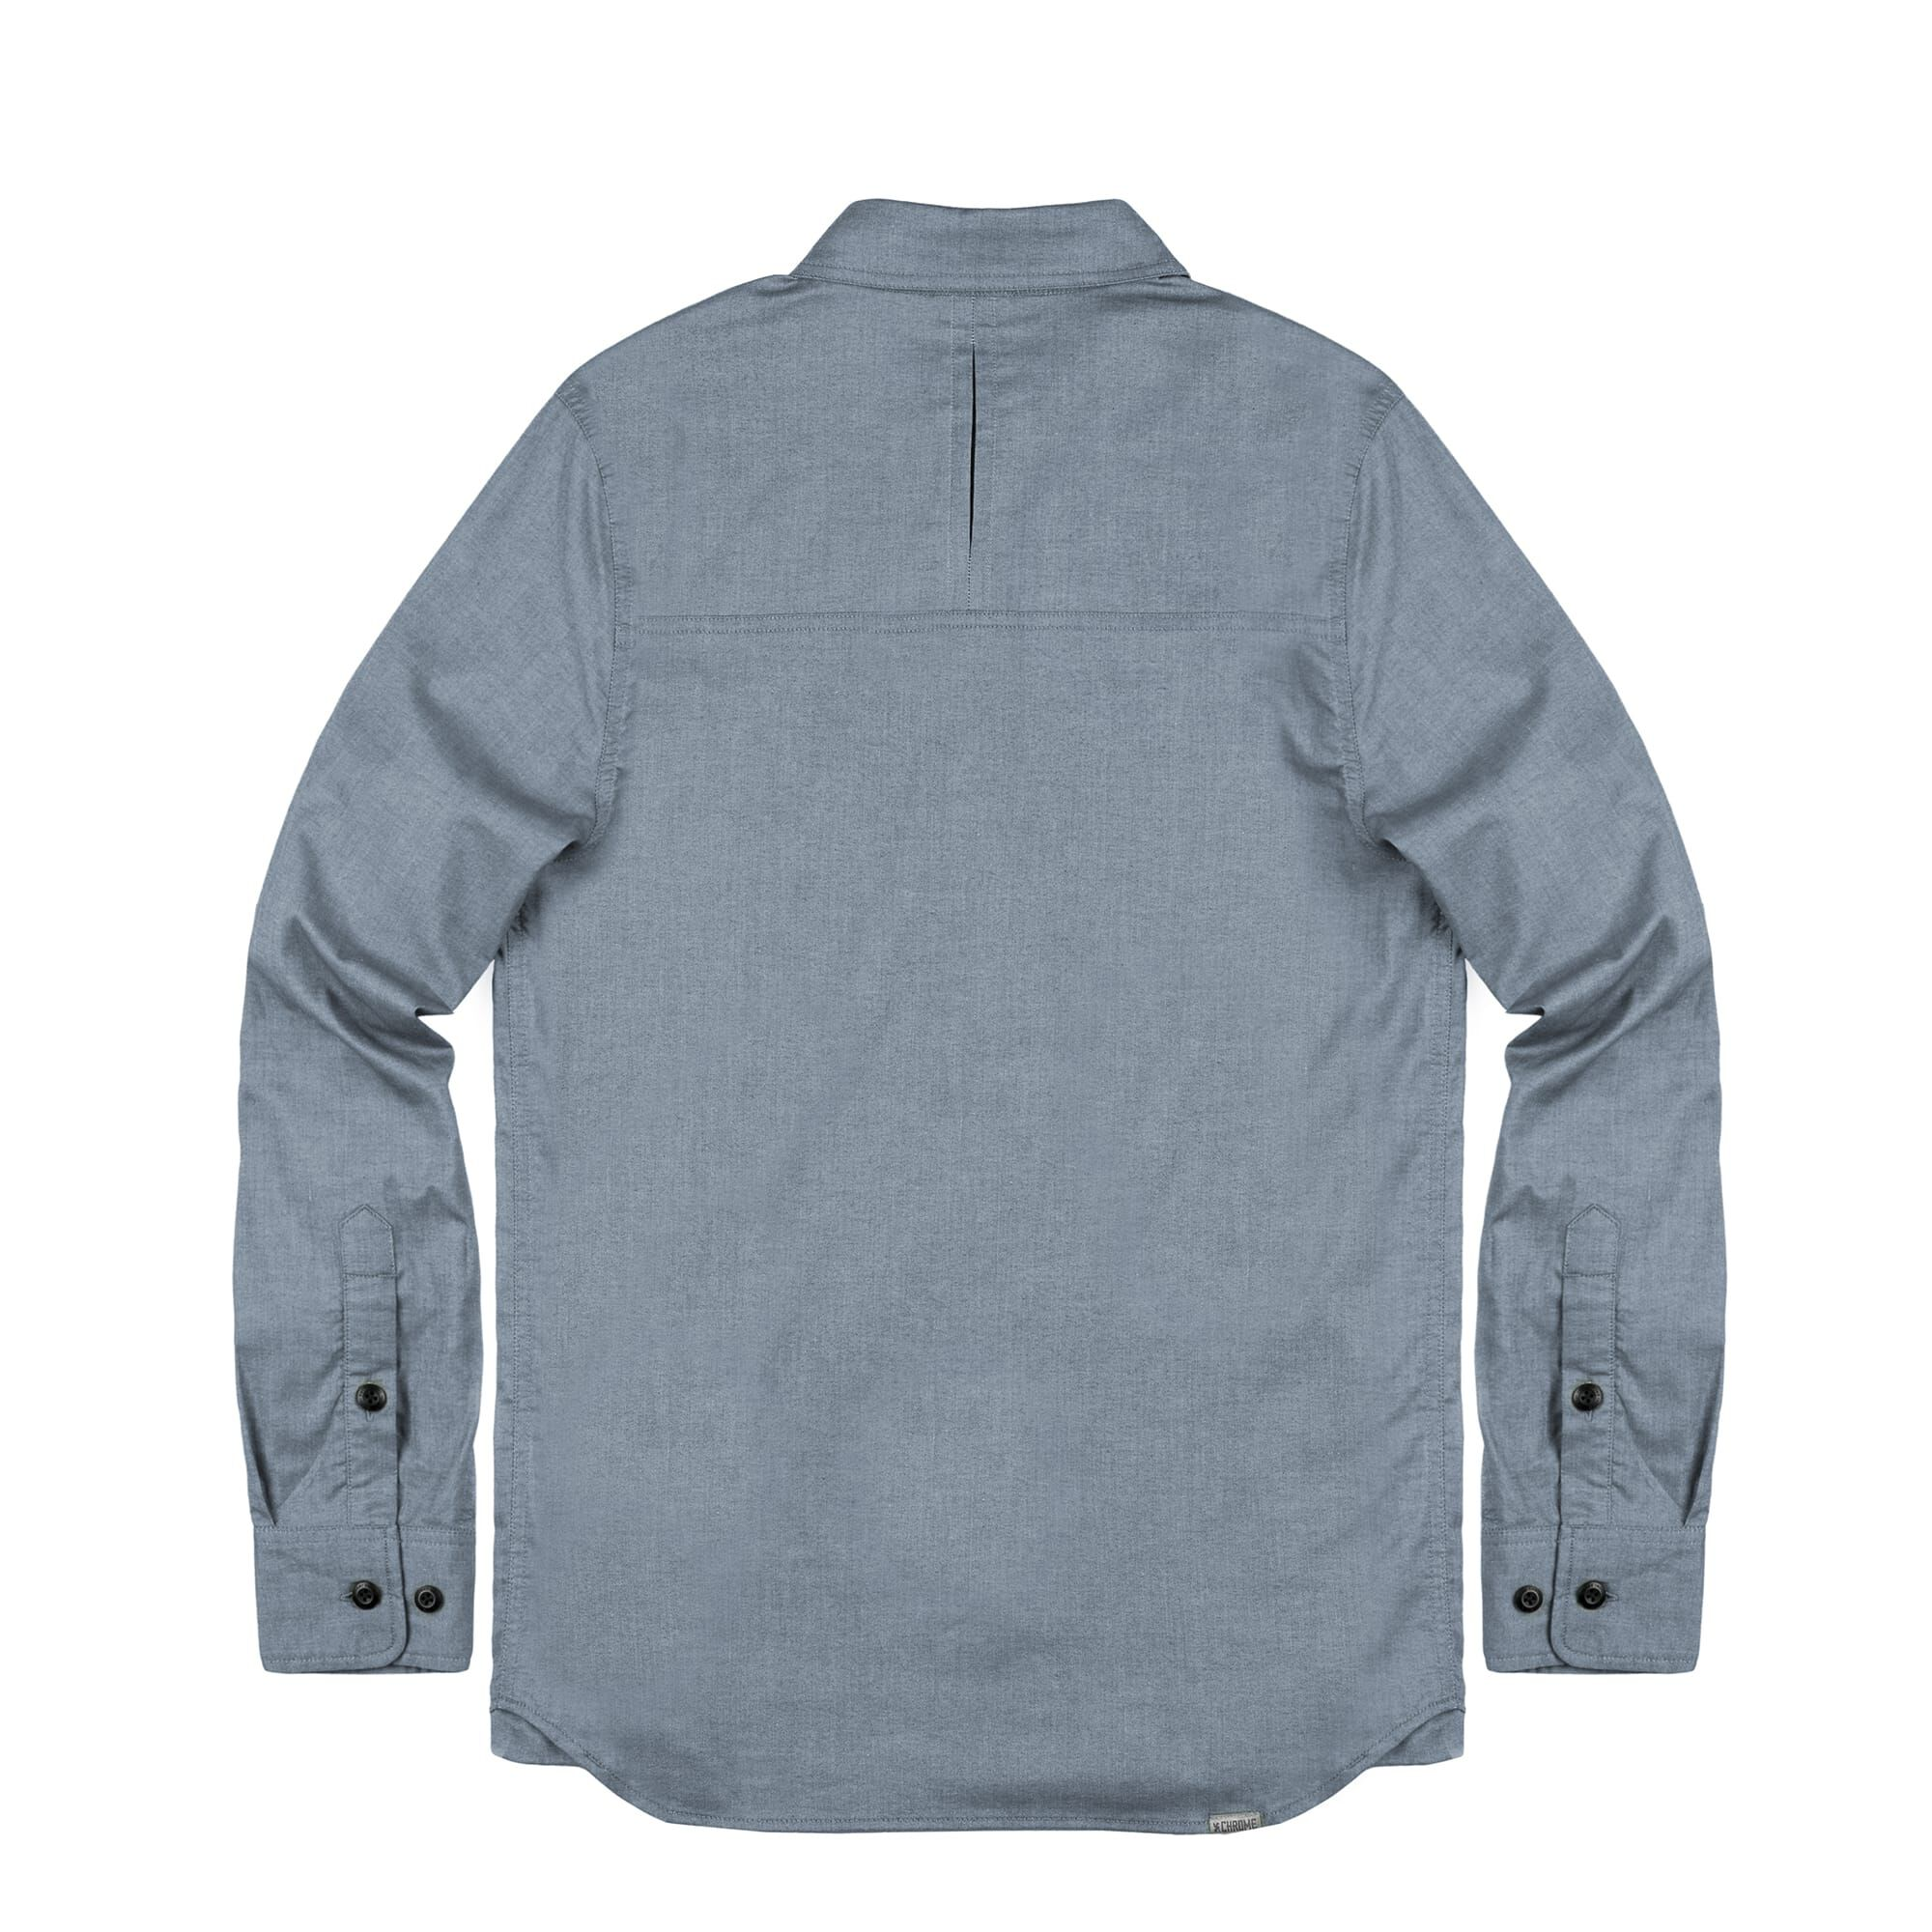 ed4e76b65570 Stretch Chambray Workshirt - Form Meets Function   Chrome Industries